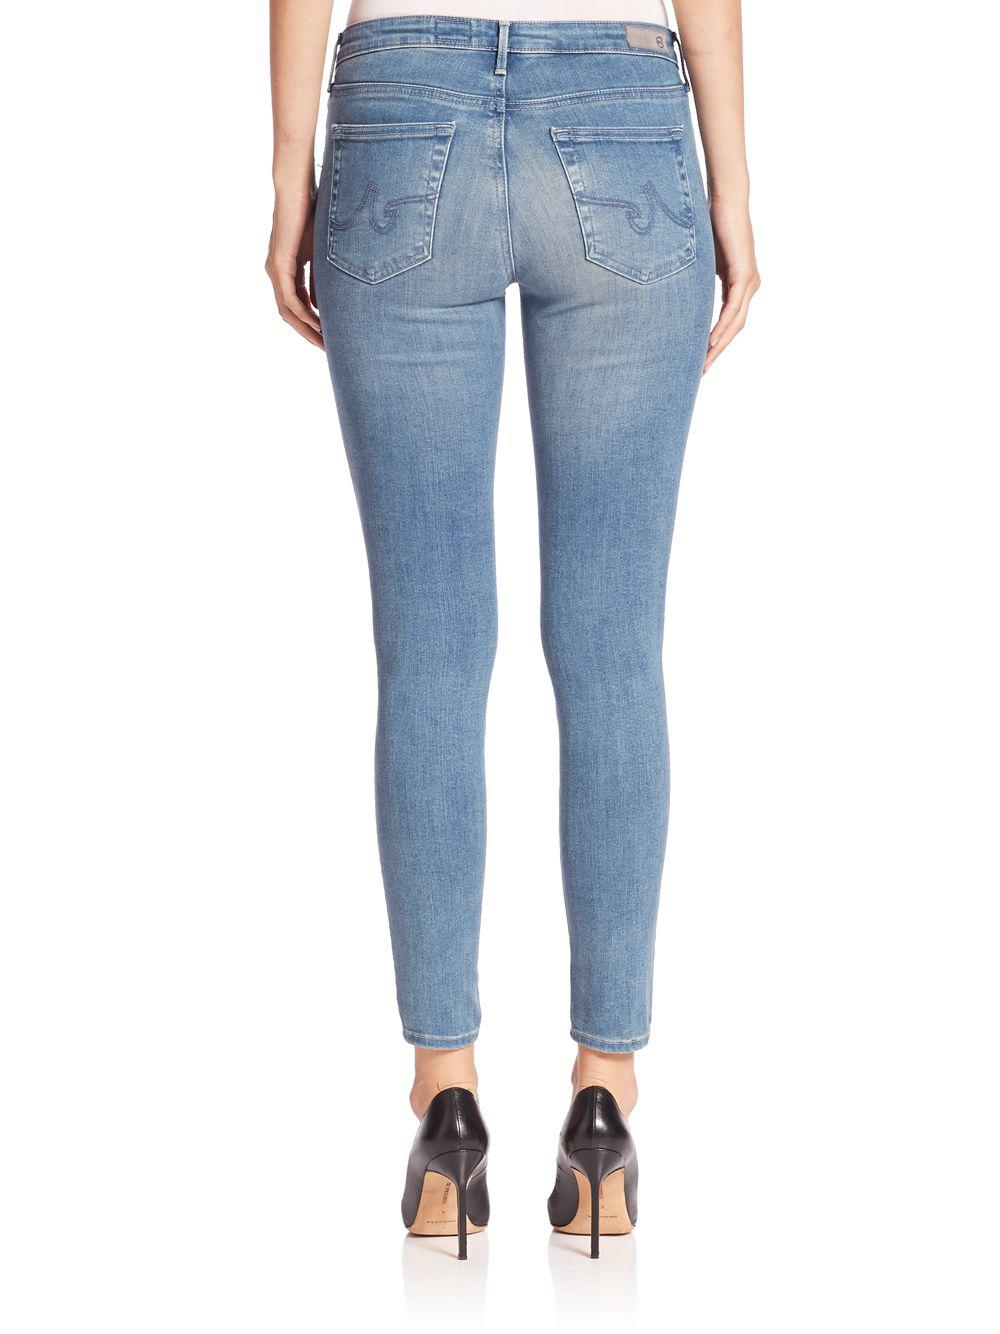 AG Jeans Denim Middi Distressed Ankle Jeans in Blue